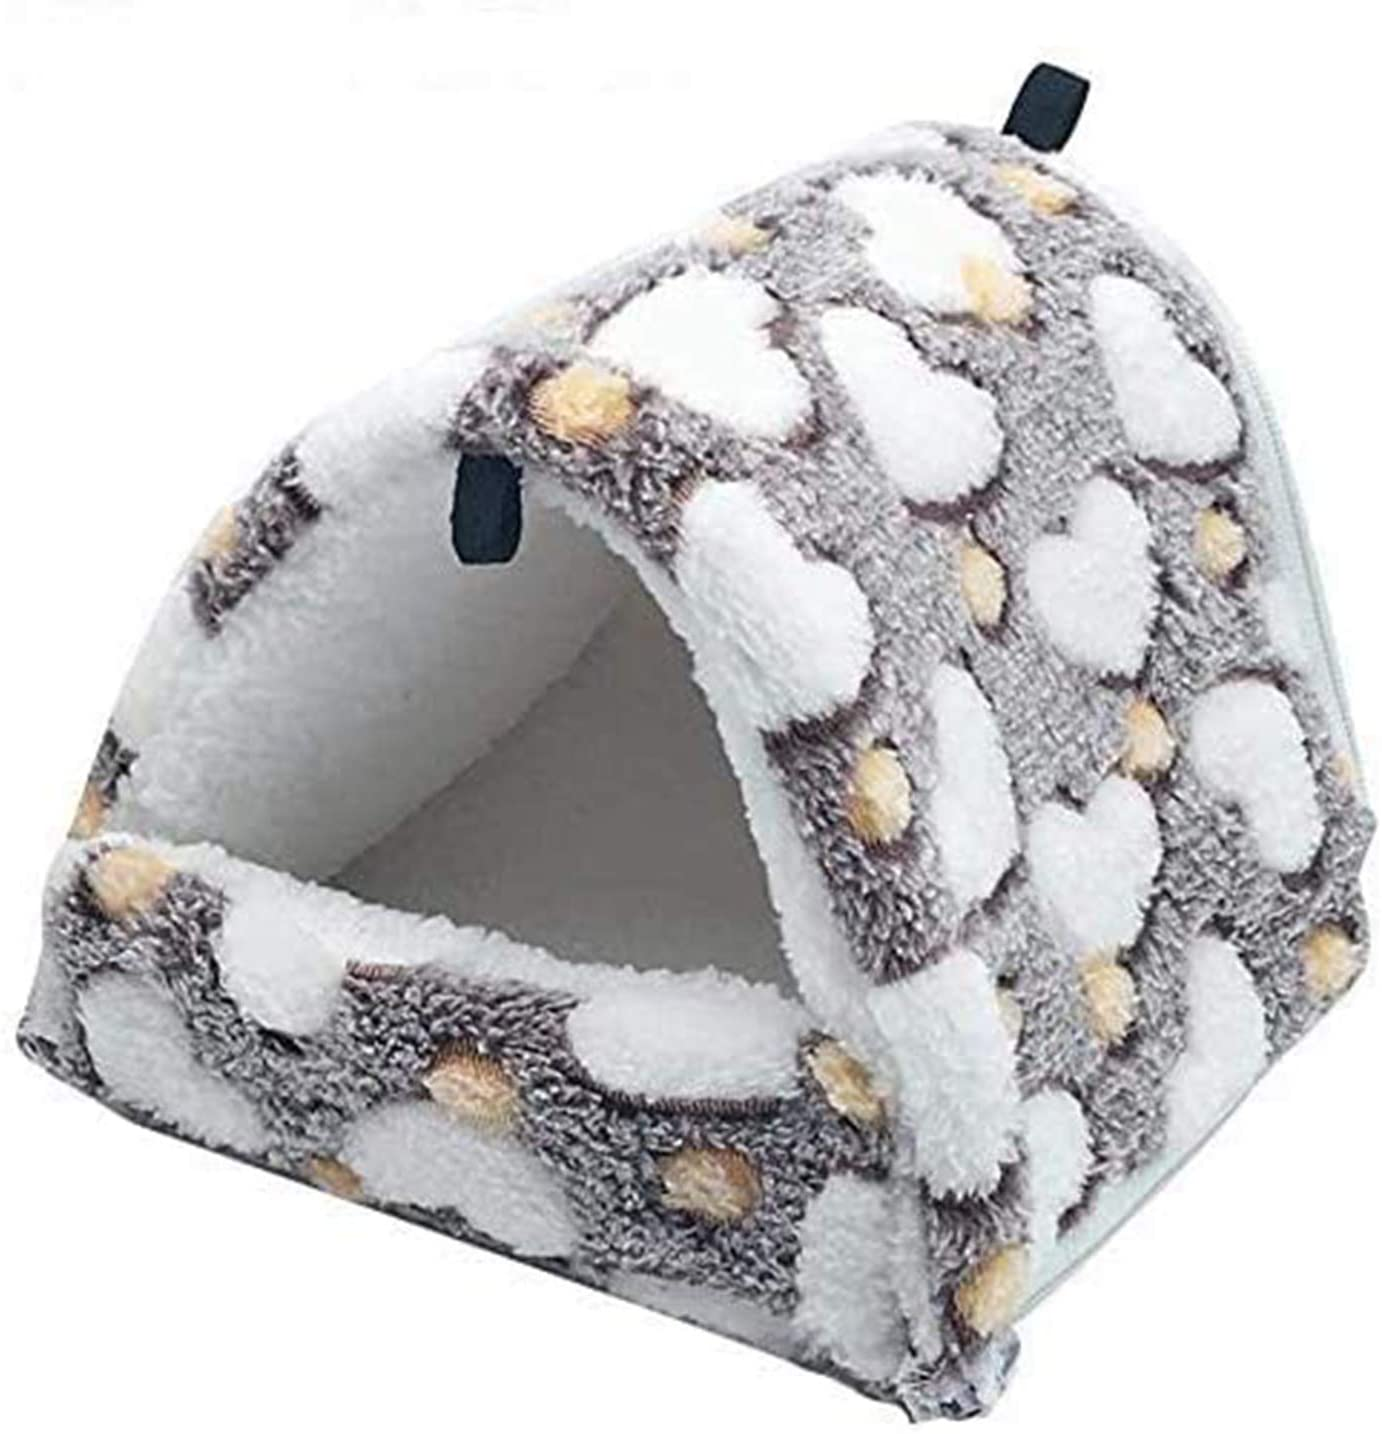 Fluffy Hamster Hammocks Pet Rat House Shed Guinea Pig Cage Bedding Washable Small Animal Pet Bed for Bird Squirrel Hedgehog Chinchilla Nest Tent